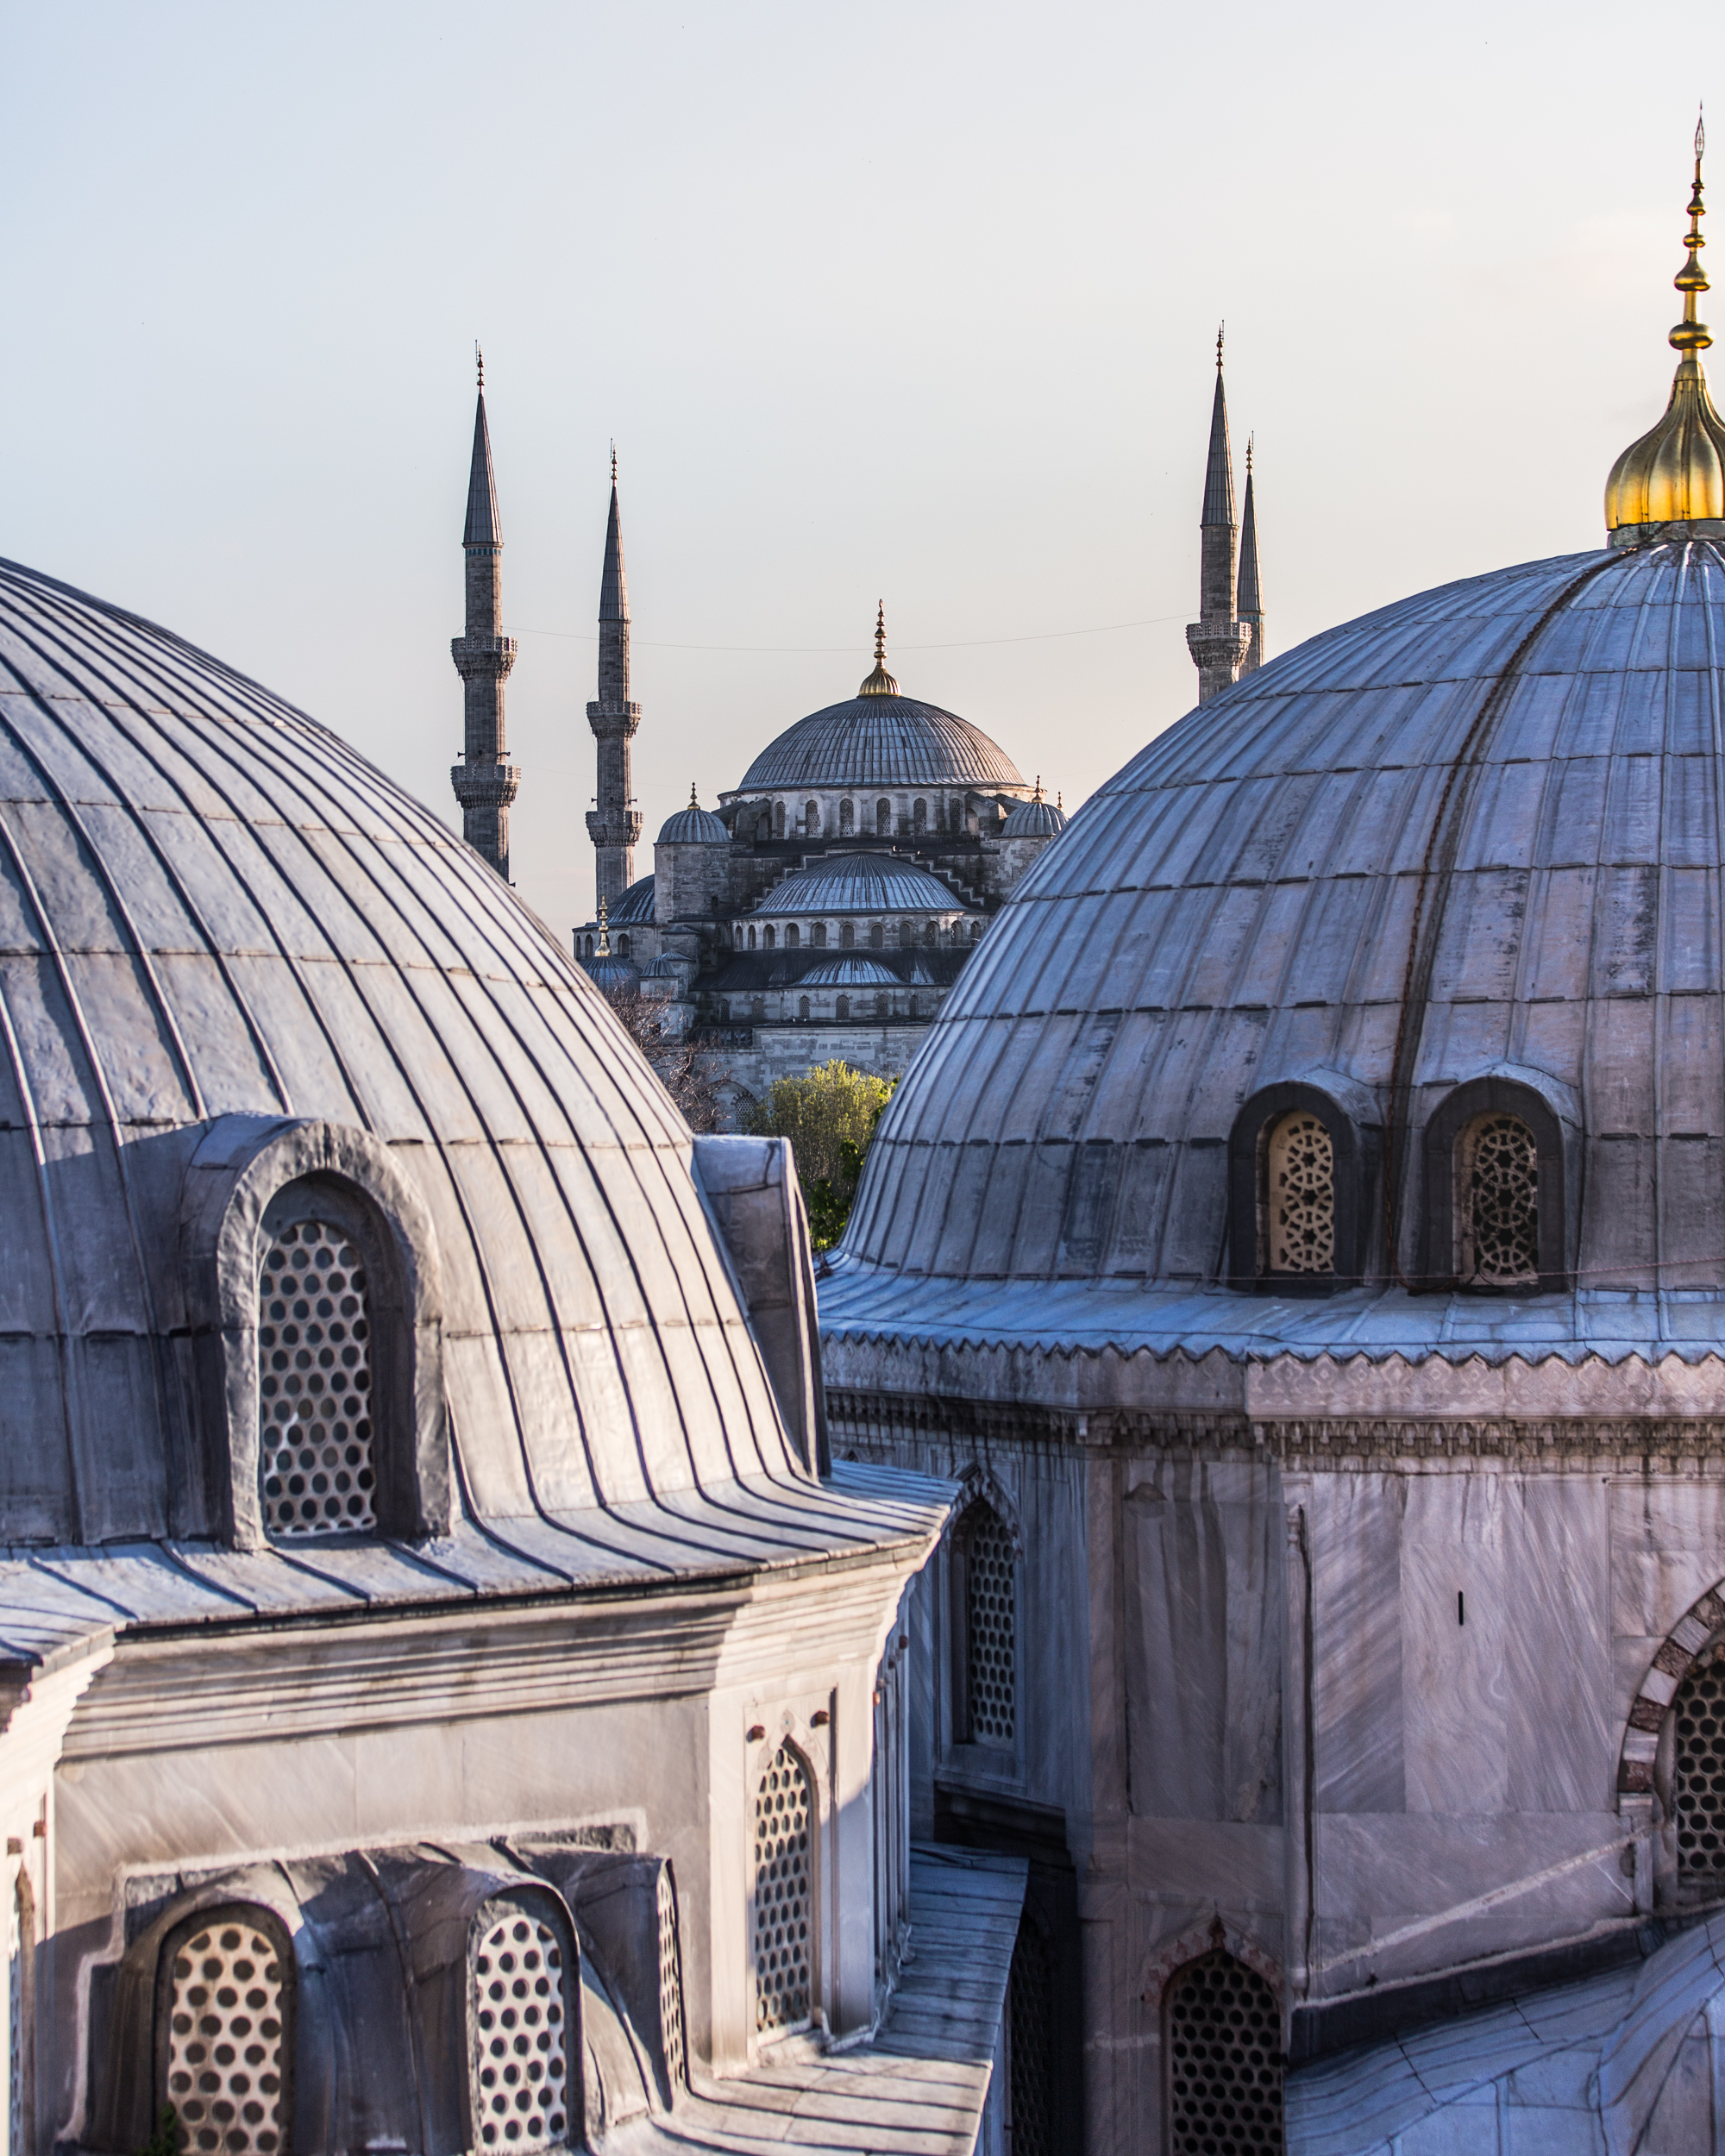 Blue Mosque seen from the window of Hagia Sophia